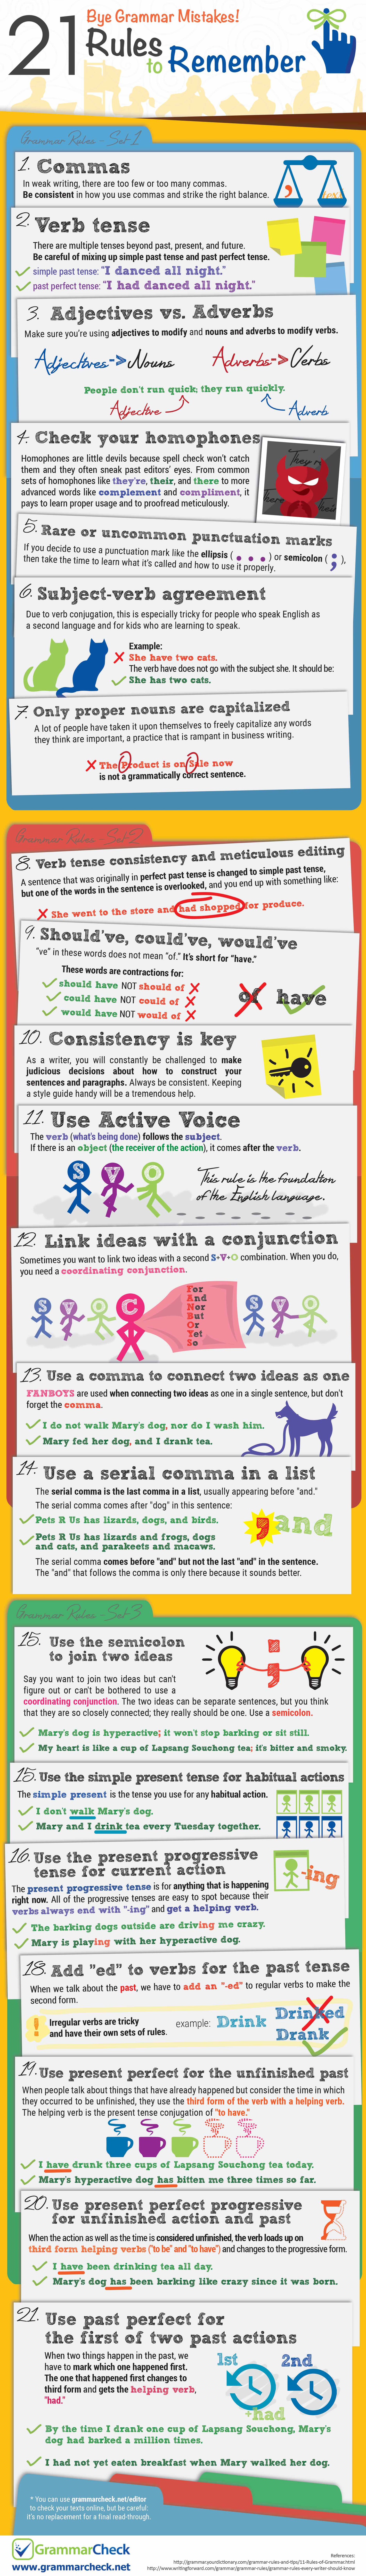 Bye Grammar Mistakes! 21 Rules to Remember (Infographic)